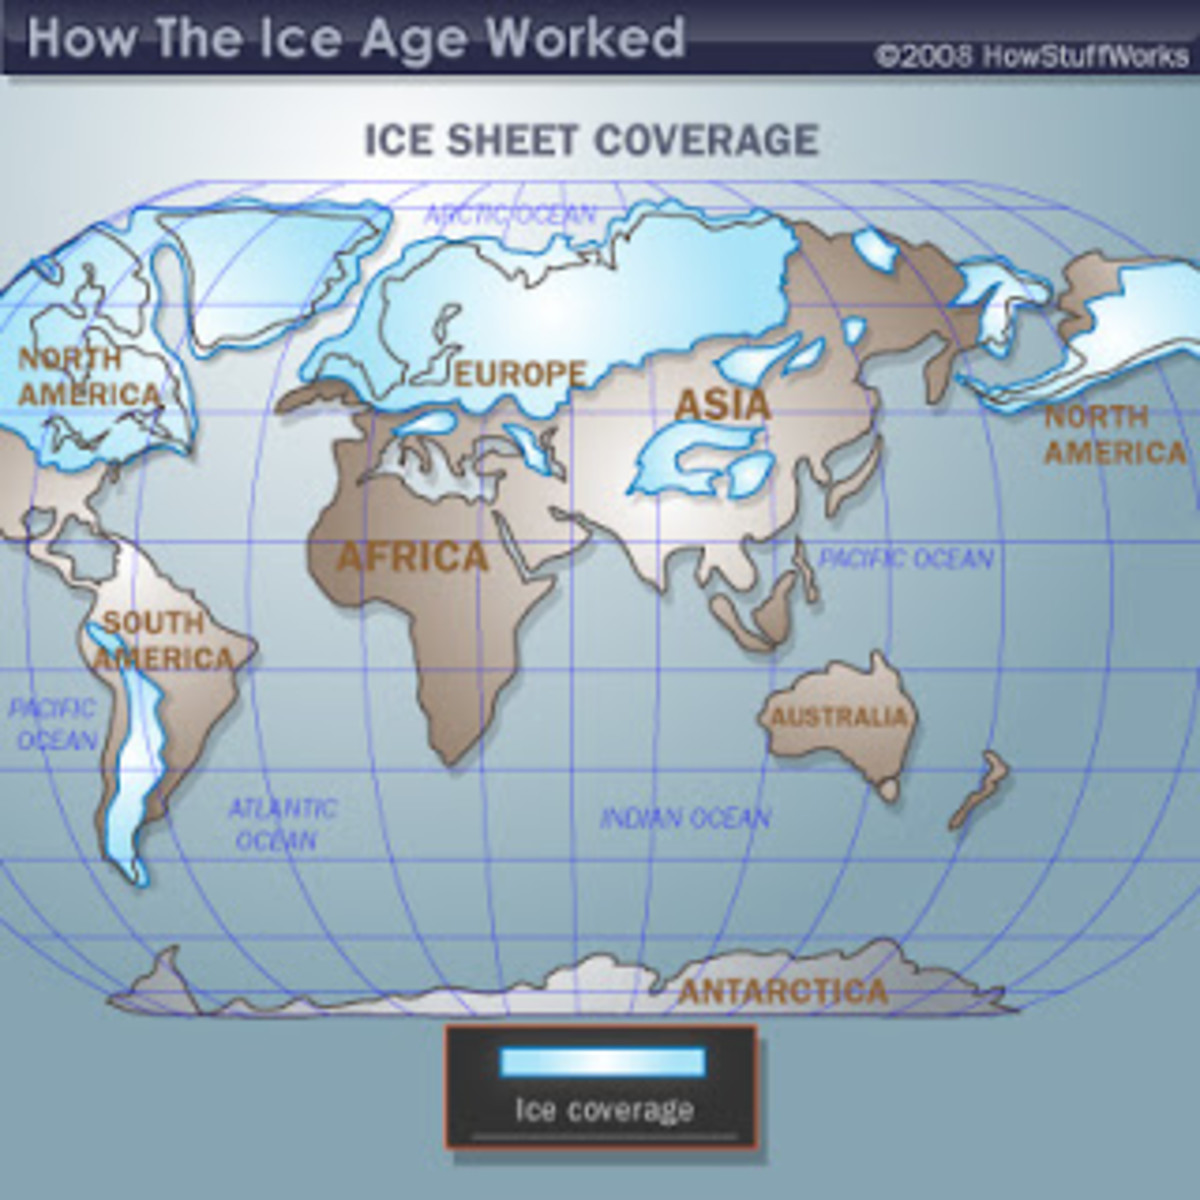 Ice Age Coverage map